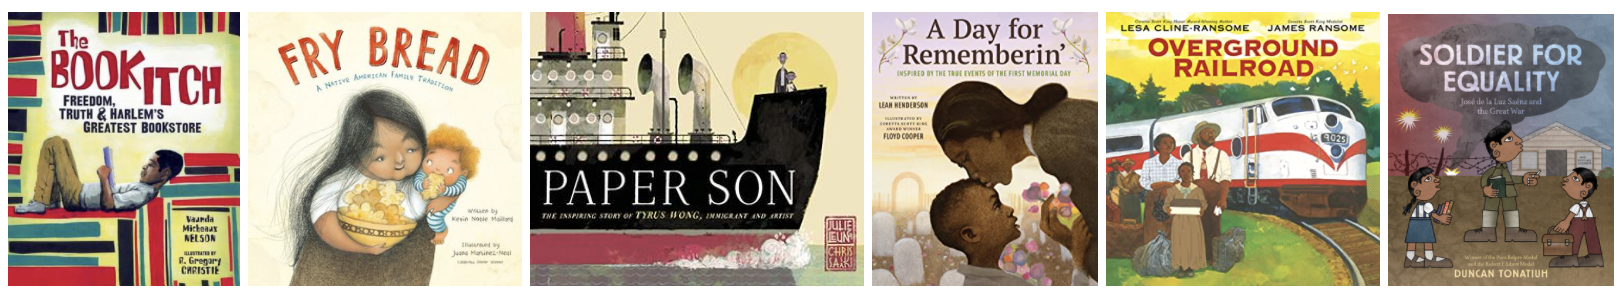 The book covers of the six books listed in the text below the image.